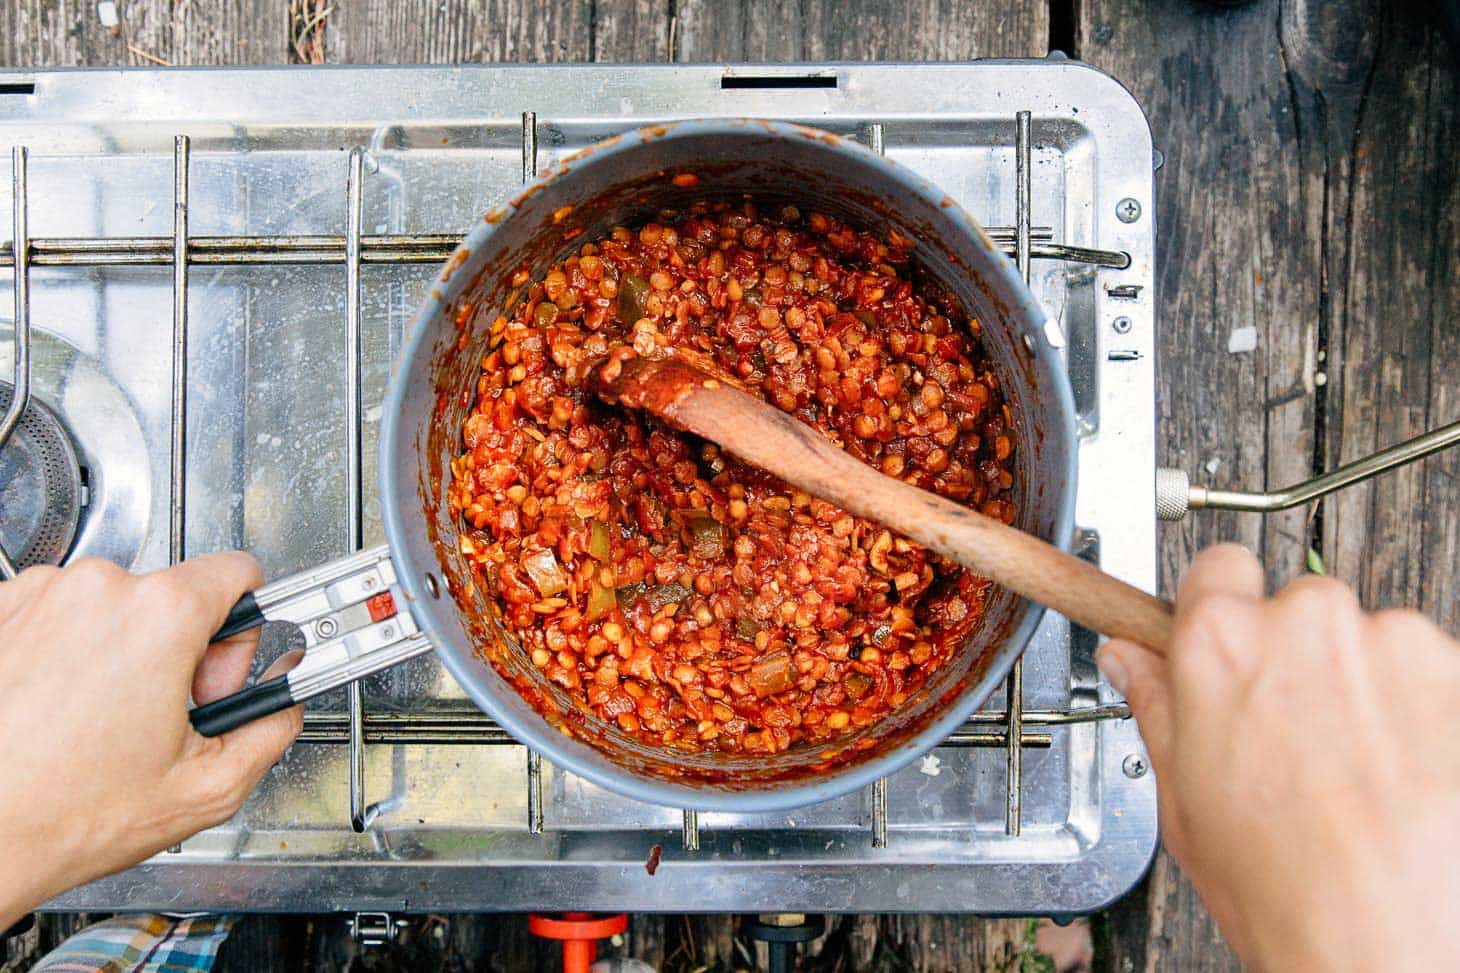 Red lentil sloppy joes filling cooking in a pot on a camping stove